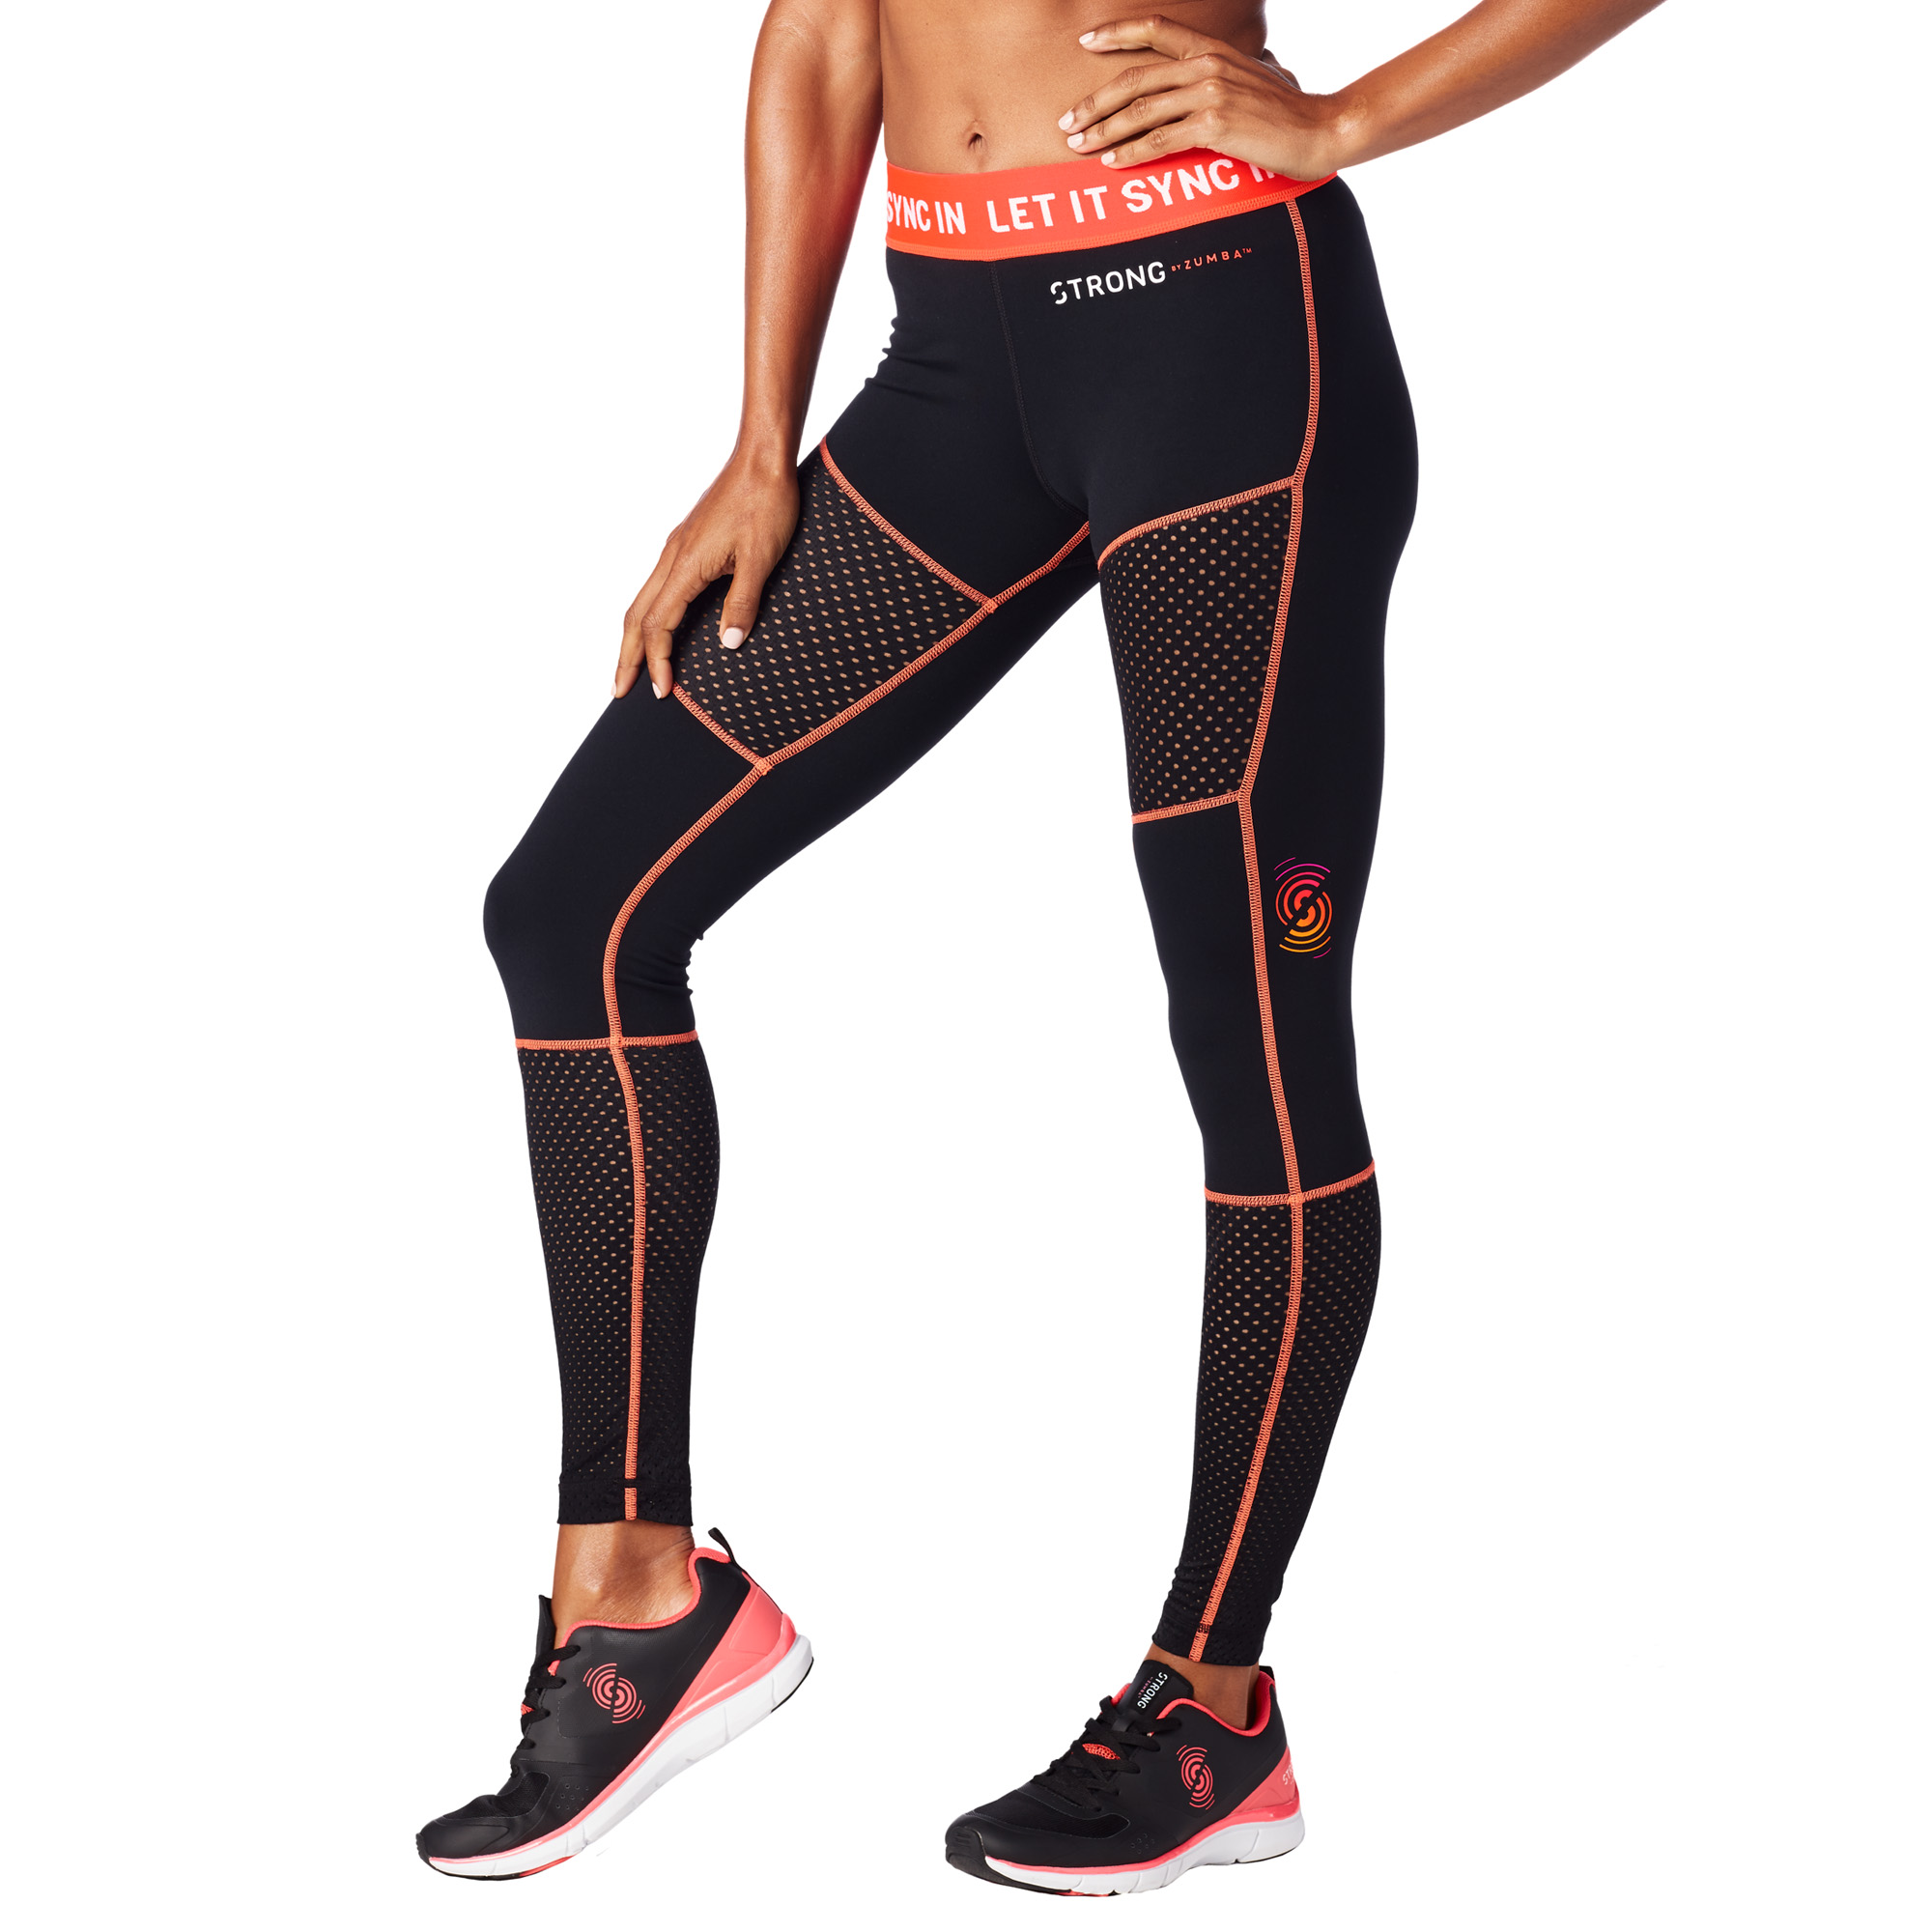 Zumba Fitness Leggings: Let It Sync In Paneled Mesh Leggings